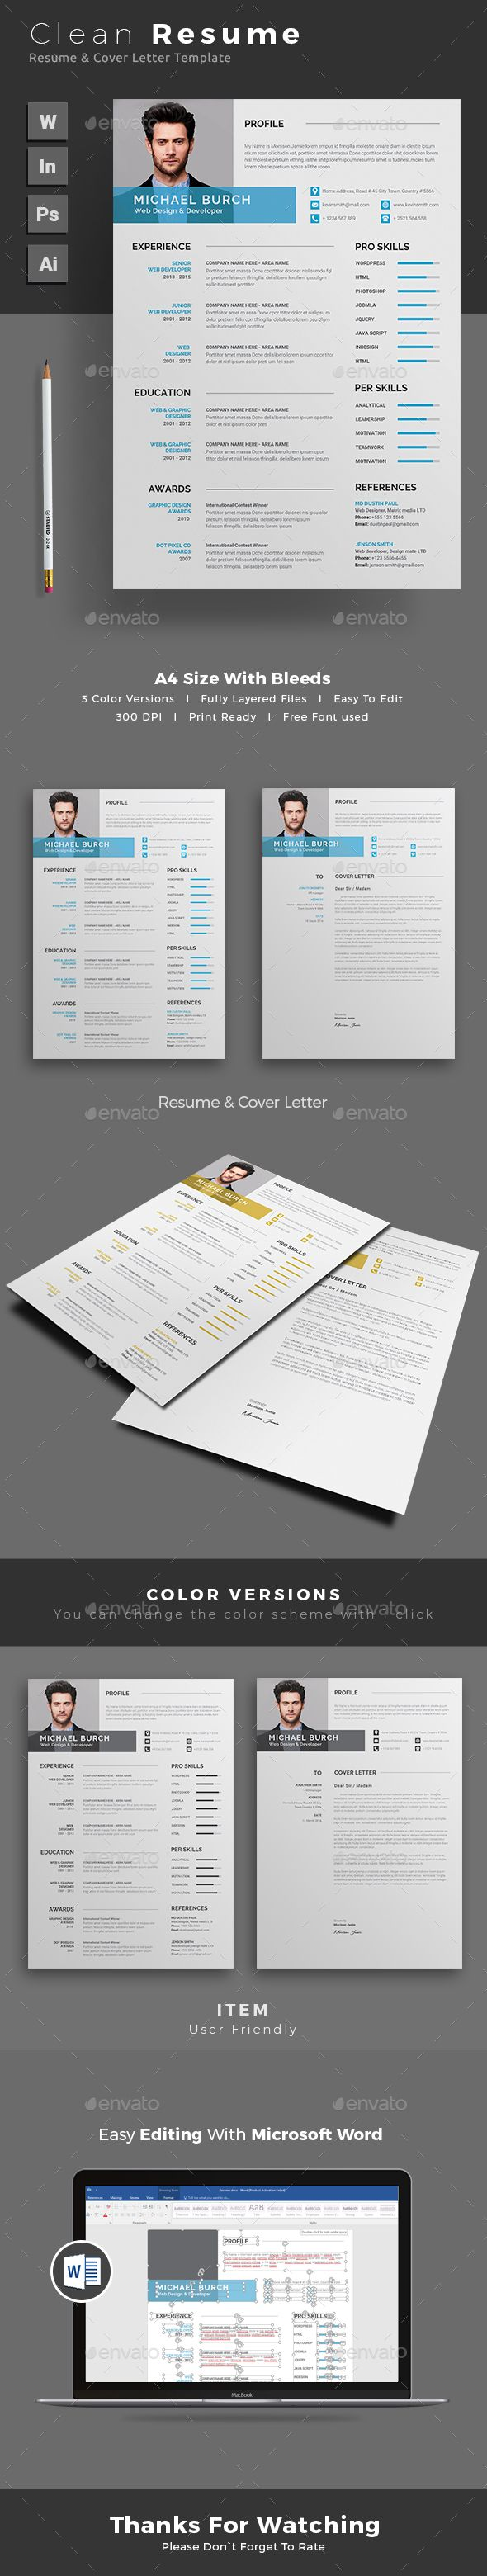 Microsoft Template Resume Free%0A dissertation proposal template